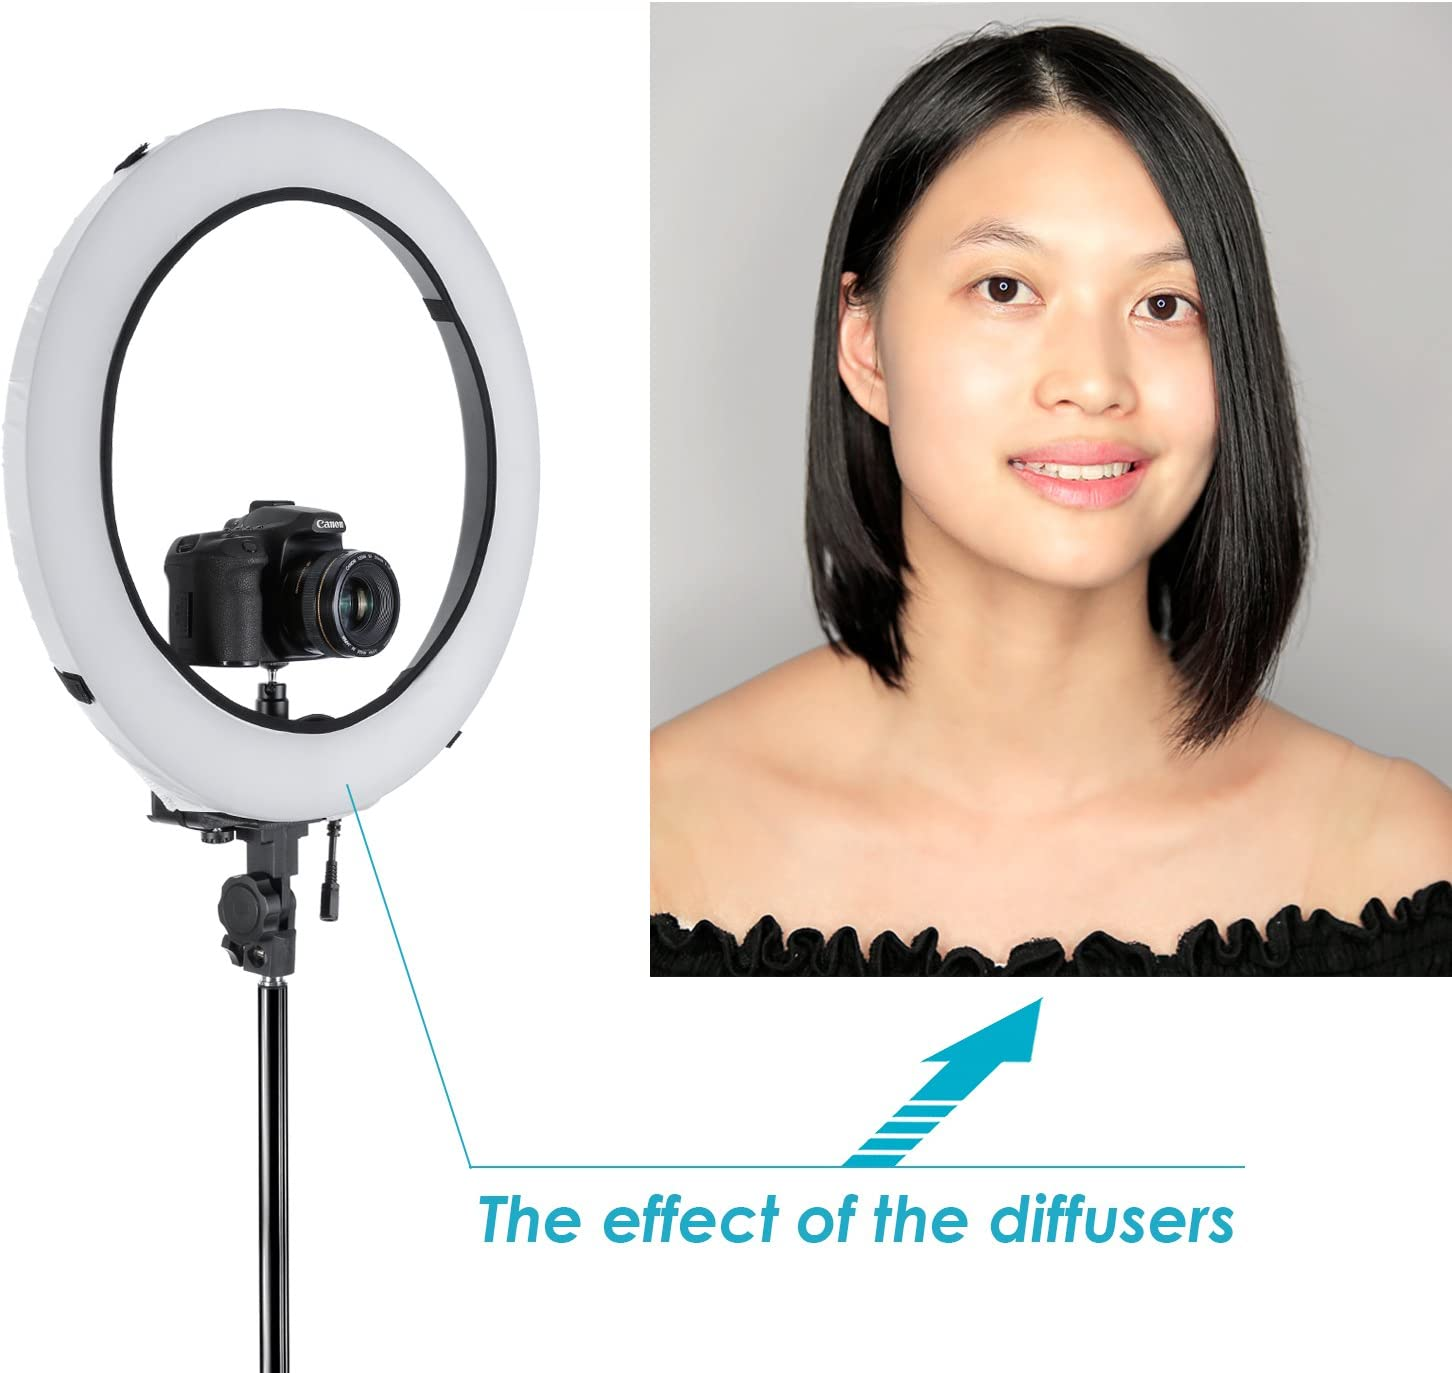 Ball Head Hot Shoe Adapter Neewer Camera Photo Studio YouTube Vine Video Lightning Kit 18 inches//46 centimeters 75W Dimmable Ring Light,75 inches//190 centimeters Light Stand Diffuser Soft Box